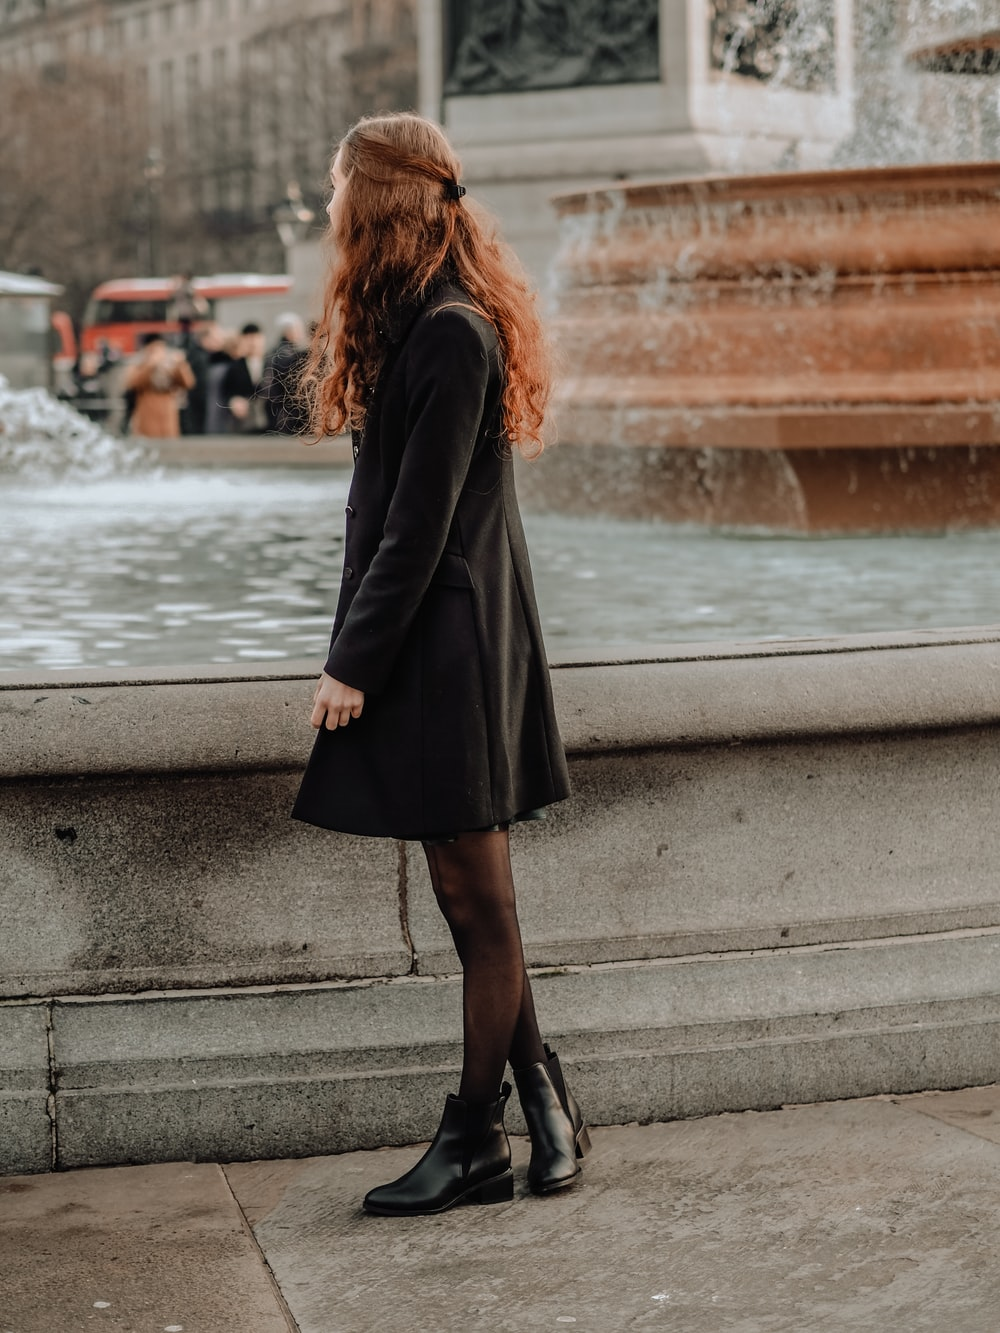 woman in black coat standing on concrete pavement during daytime